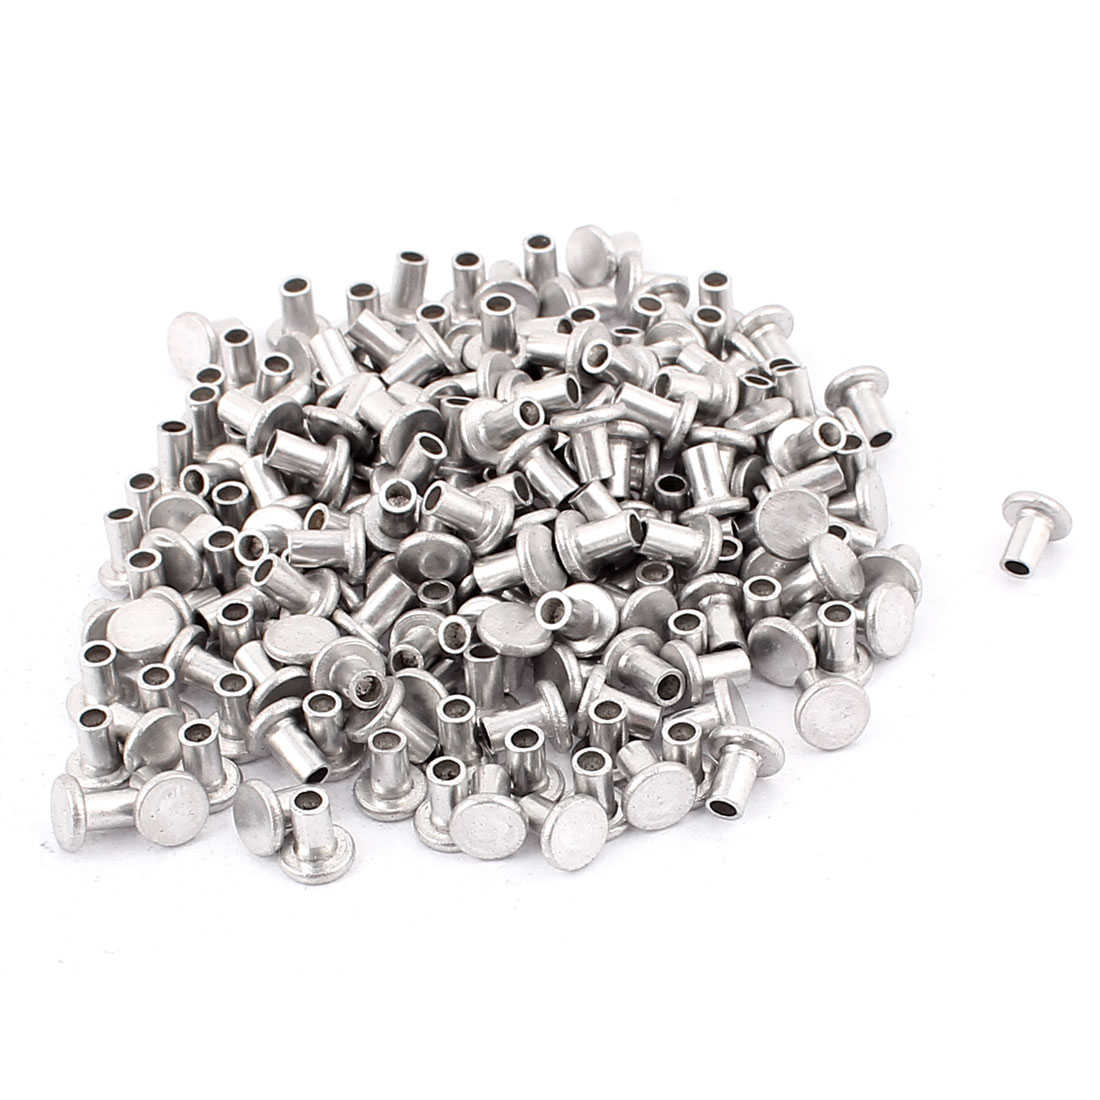 200 Pcs M4 x 6mm Aluminum Flat Head Semi-Tubular Rivets Silver Tone